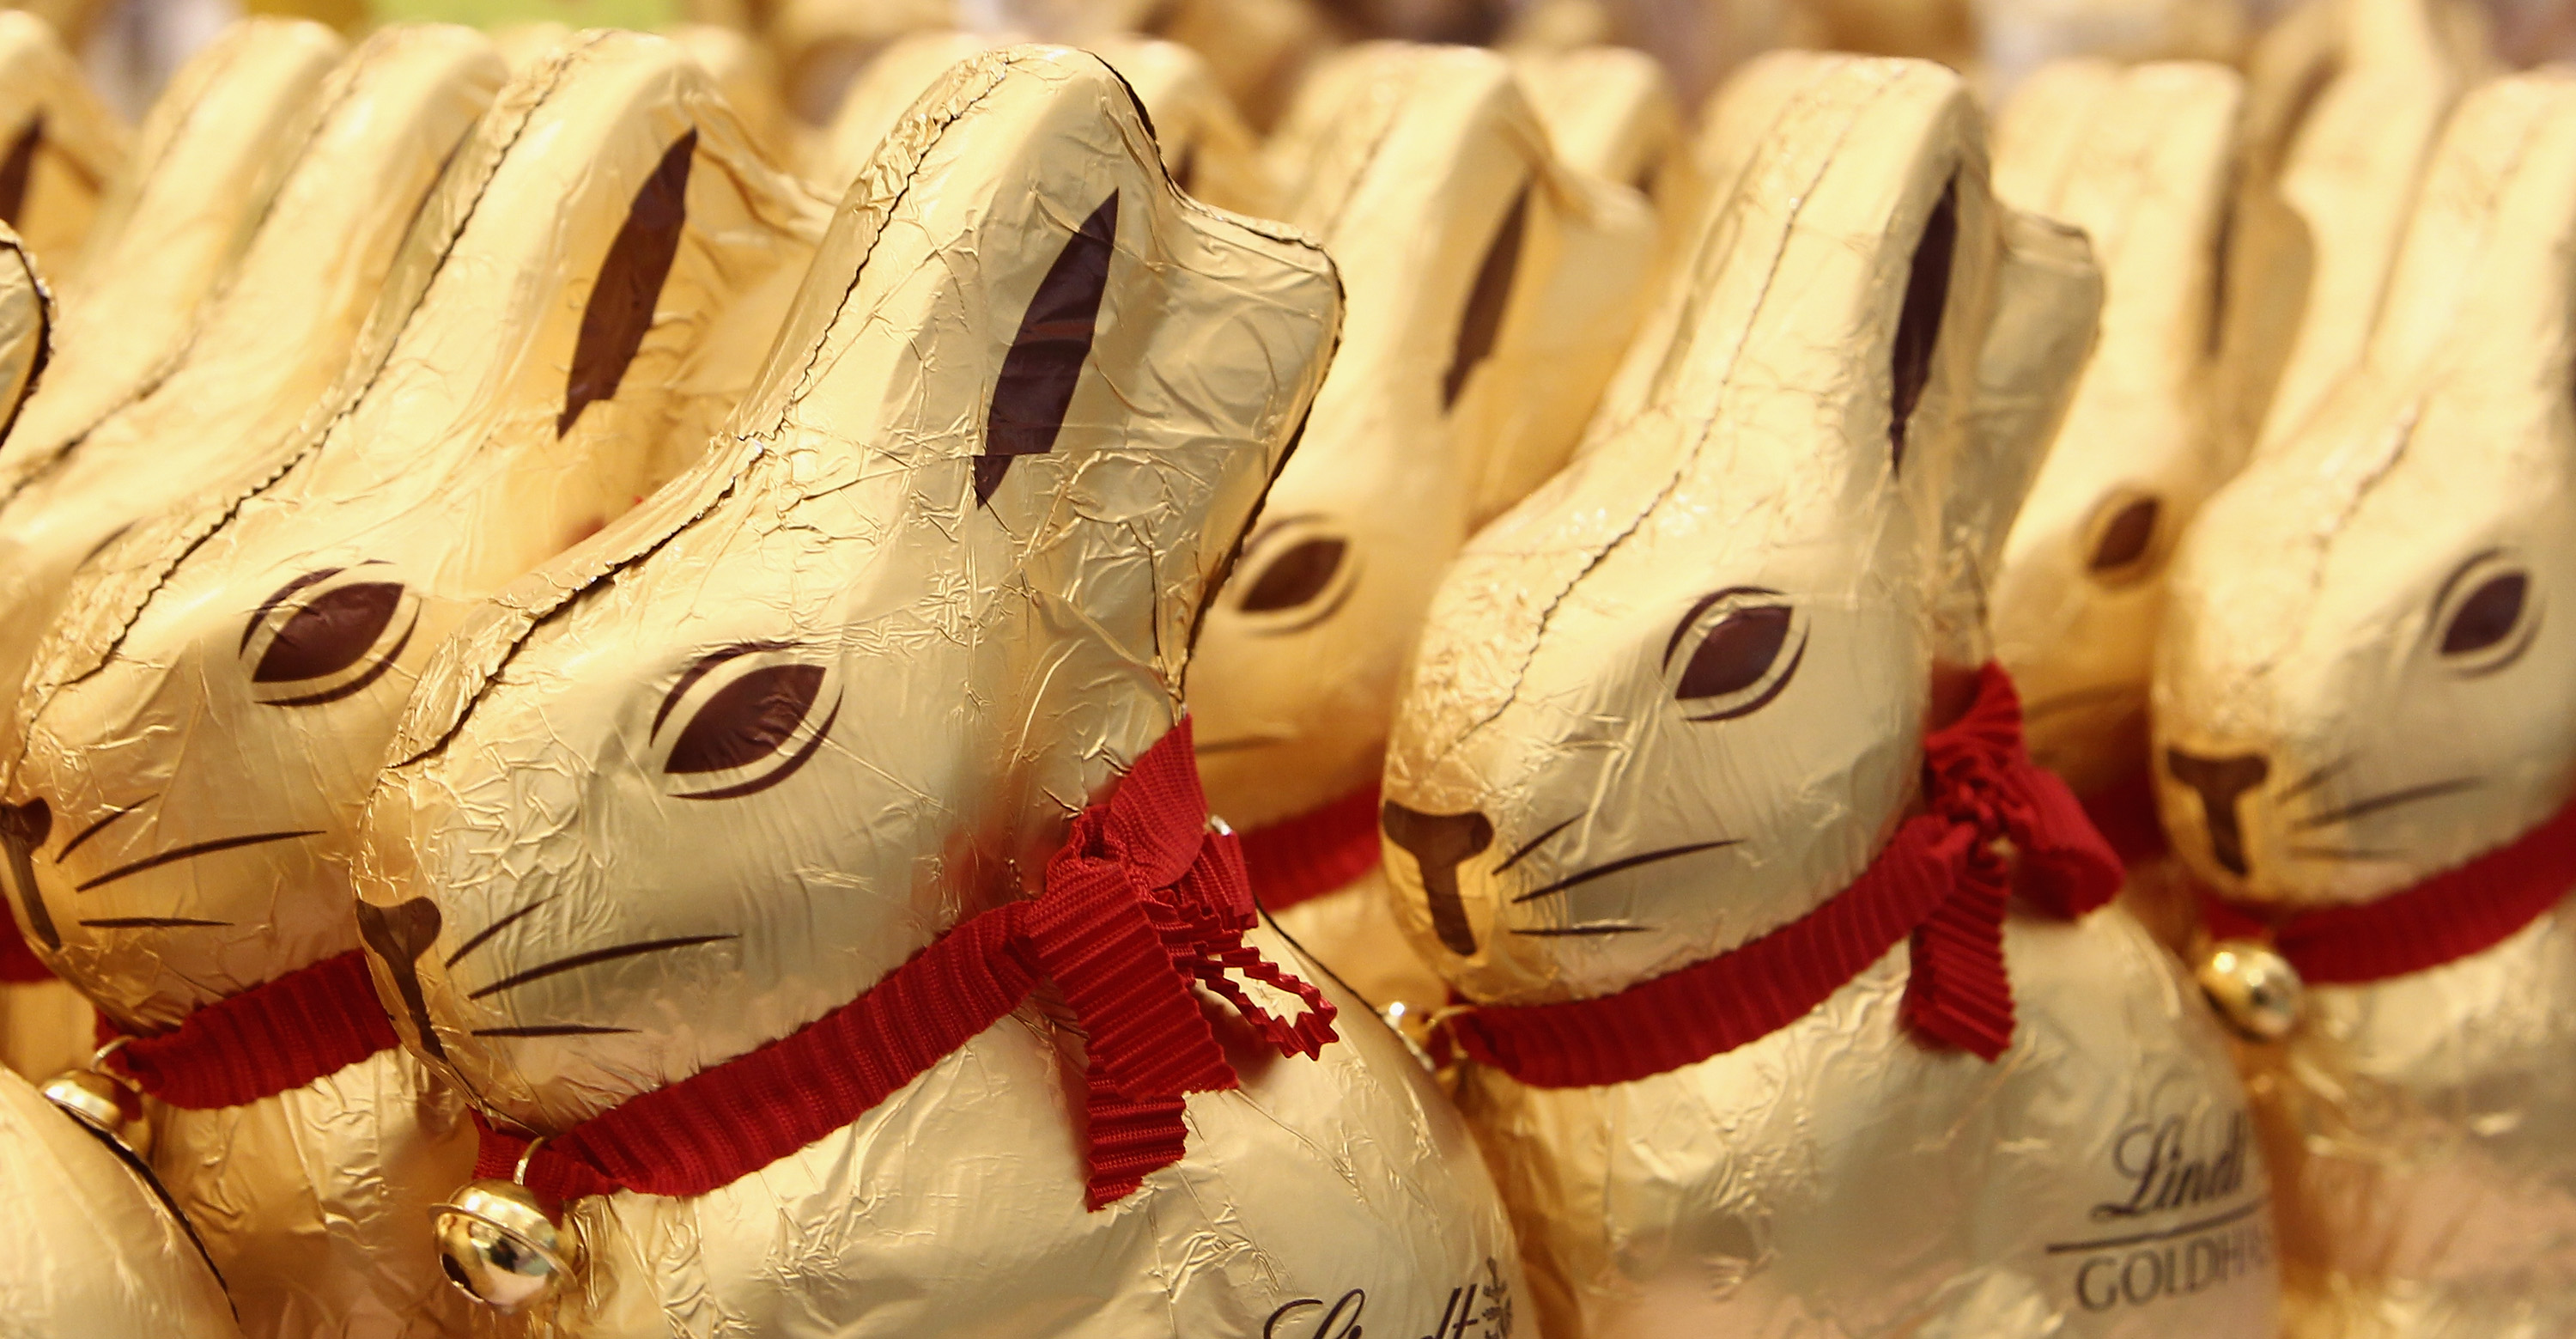 chocolate-gold-bunny2.jpg